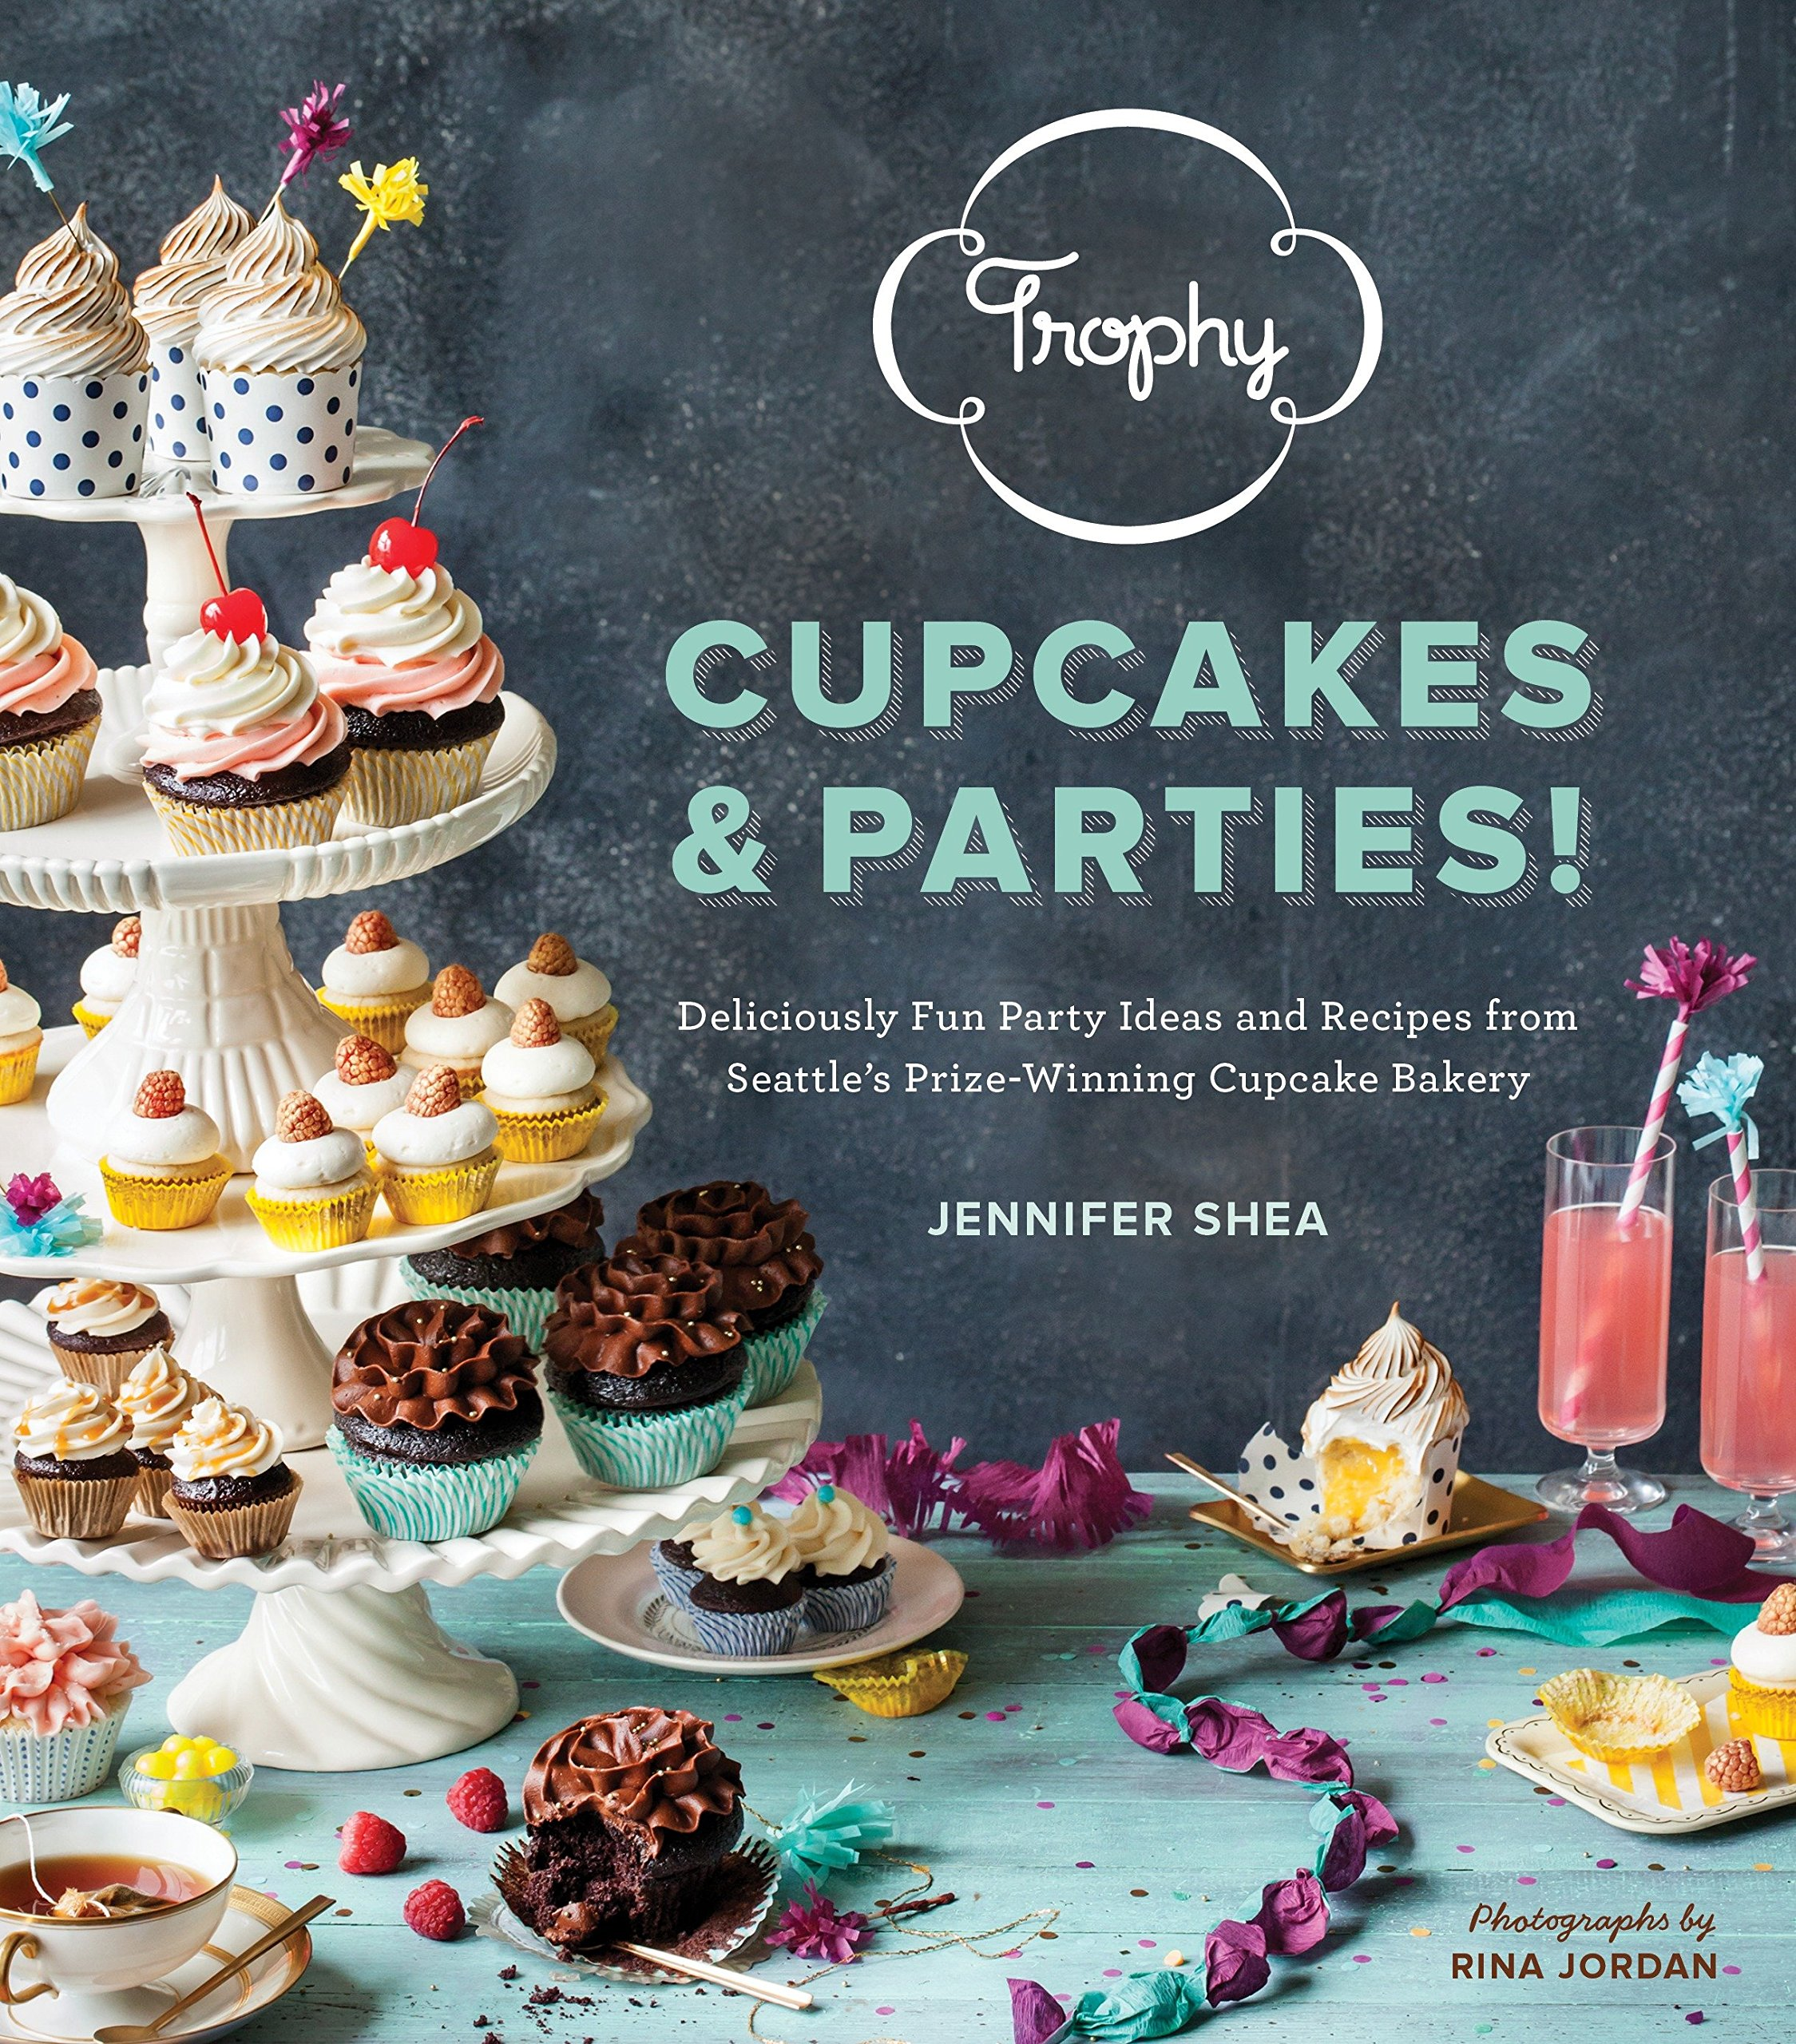 Trophy Cupcakes & Parties!: Deliciously Fun Party Ideas and Recipes from Seattle's Prize-Winning Cupcake Bakery by Brand: Sasquatch Books